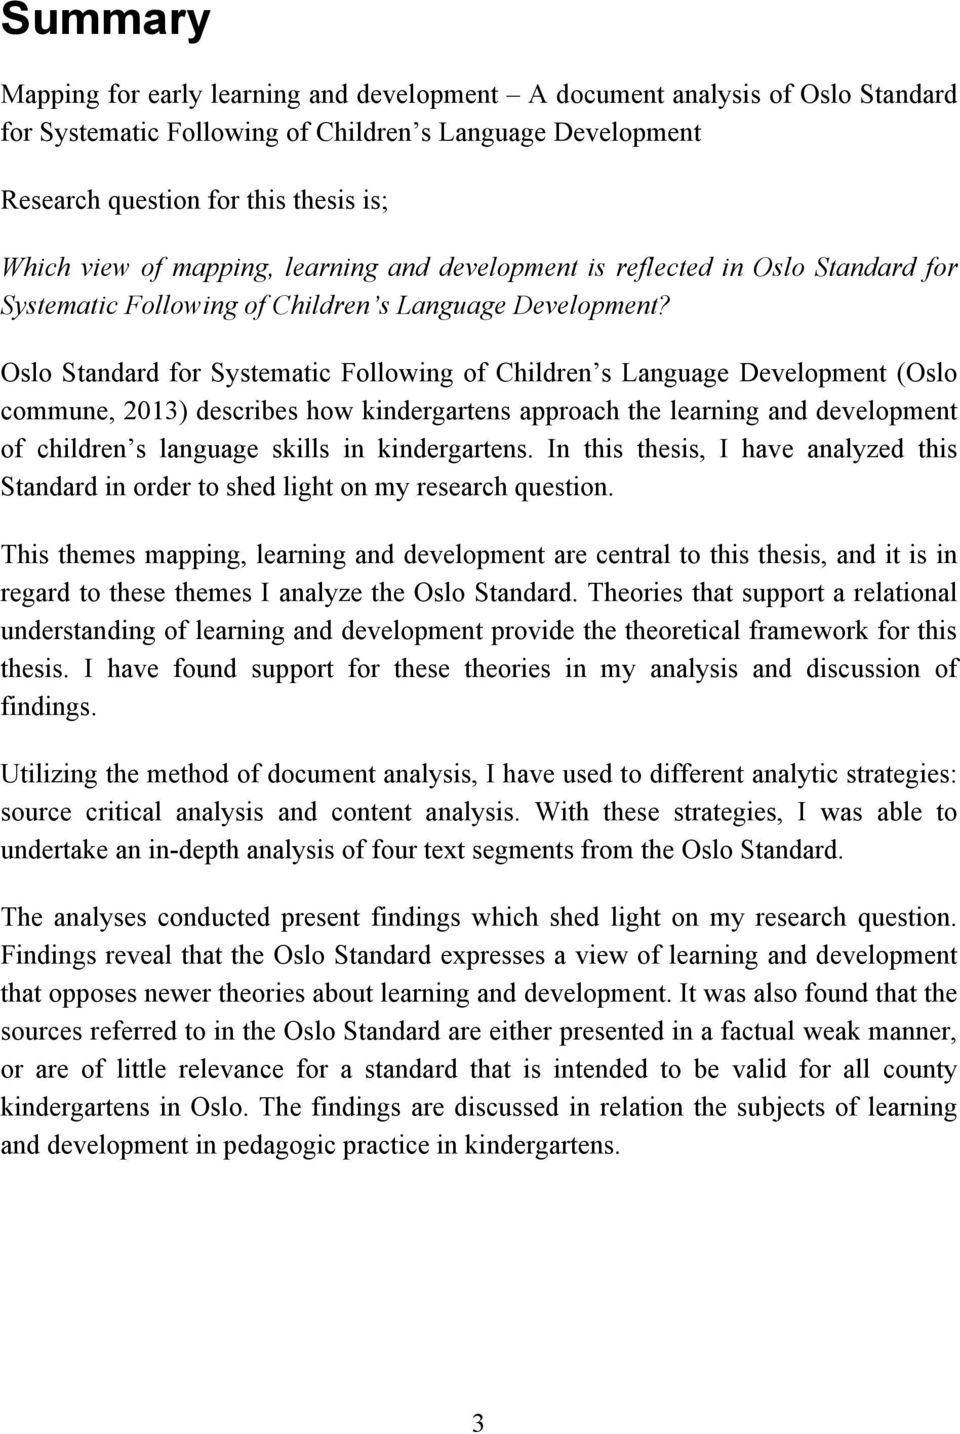 Oslo Standard for Systematic Following of Children s Language Development (Oslo commune, 2013) describes how kindergartens approach the learning and development of children s language skills in